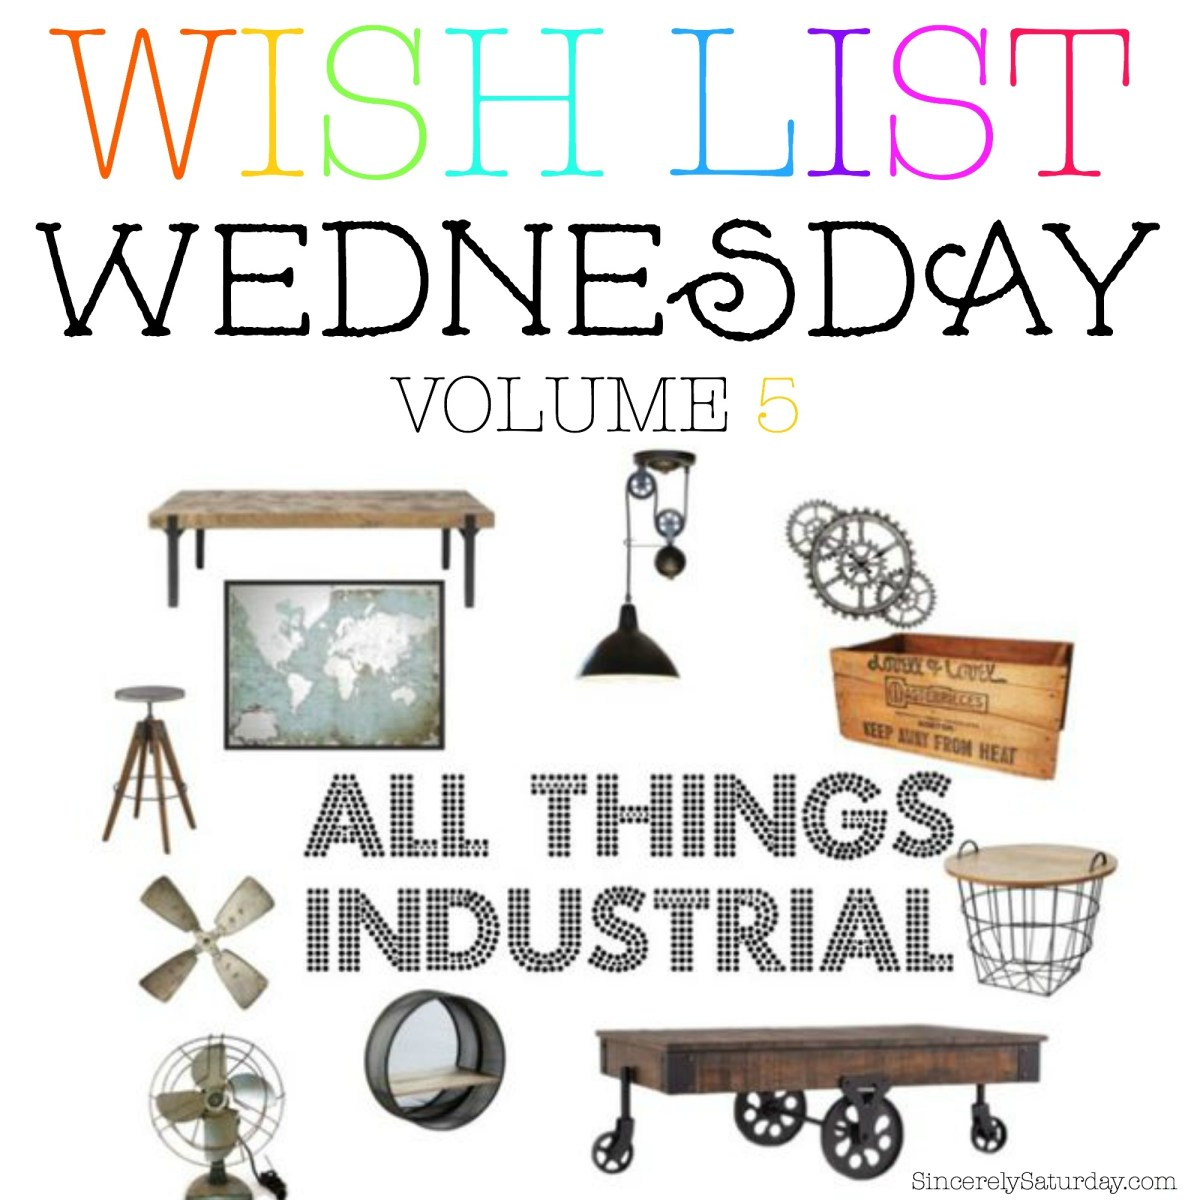 WISH LIST WEDNESDAY # 5 - ALL THINGS INDUSTRIAL